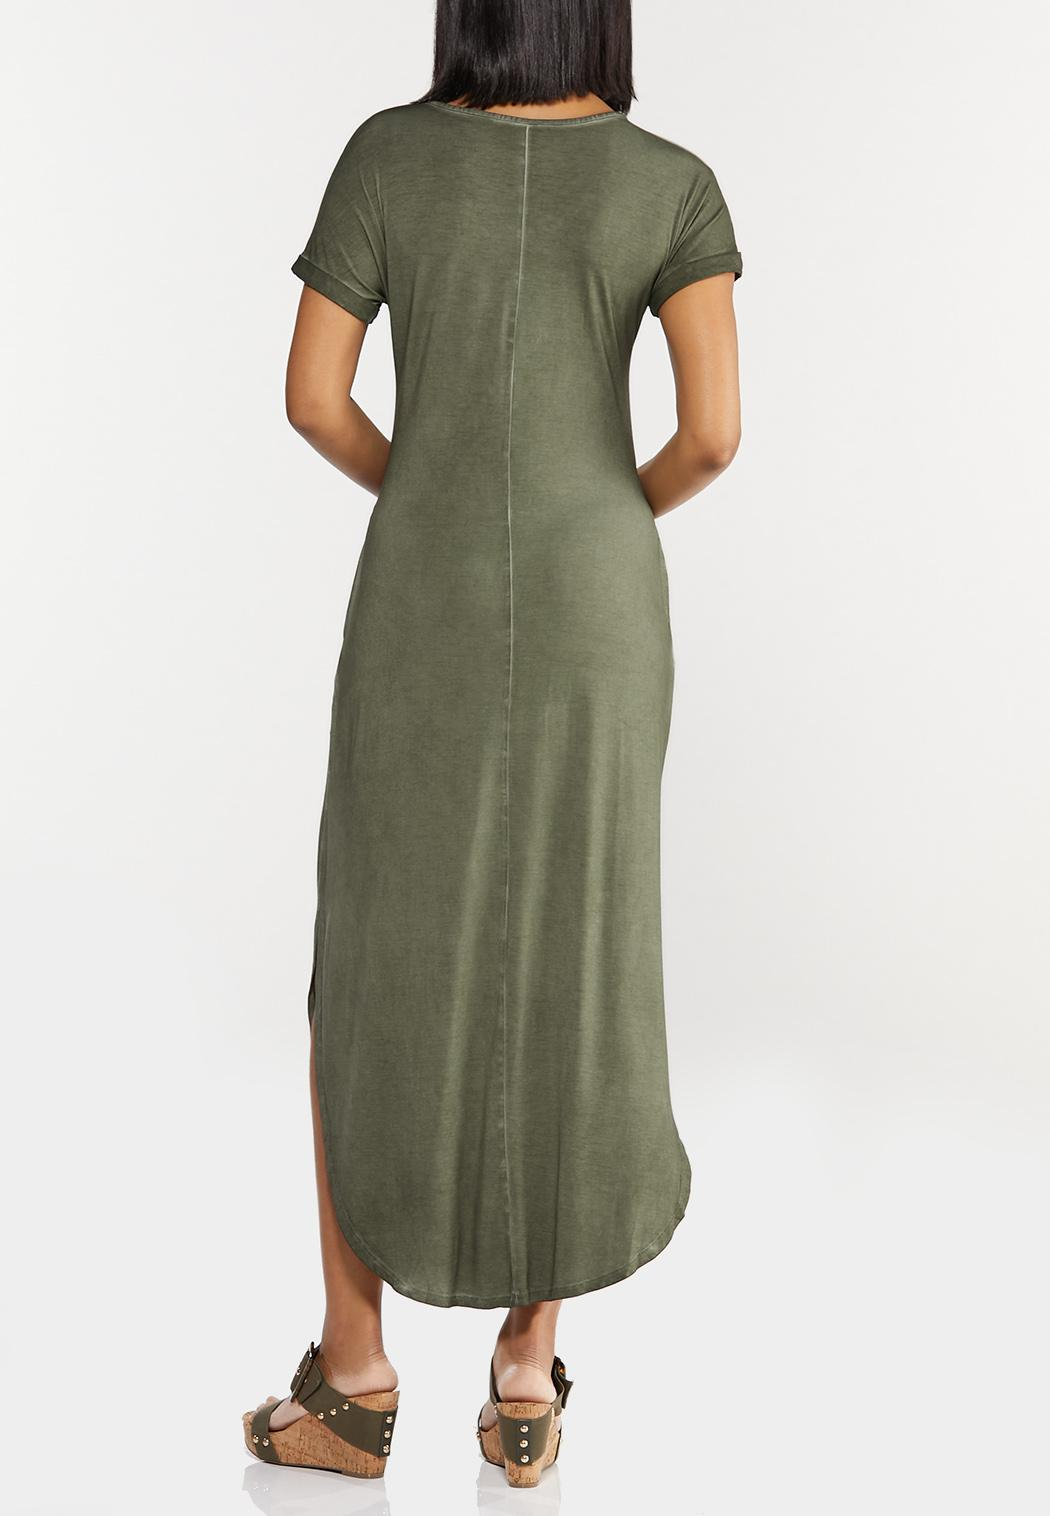 Plus Size Rise Above Knotted Maxi Dress (Item #44501107)